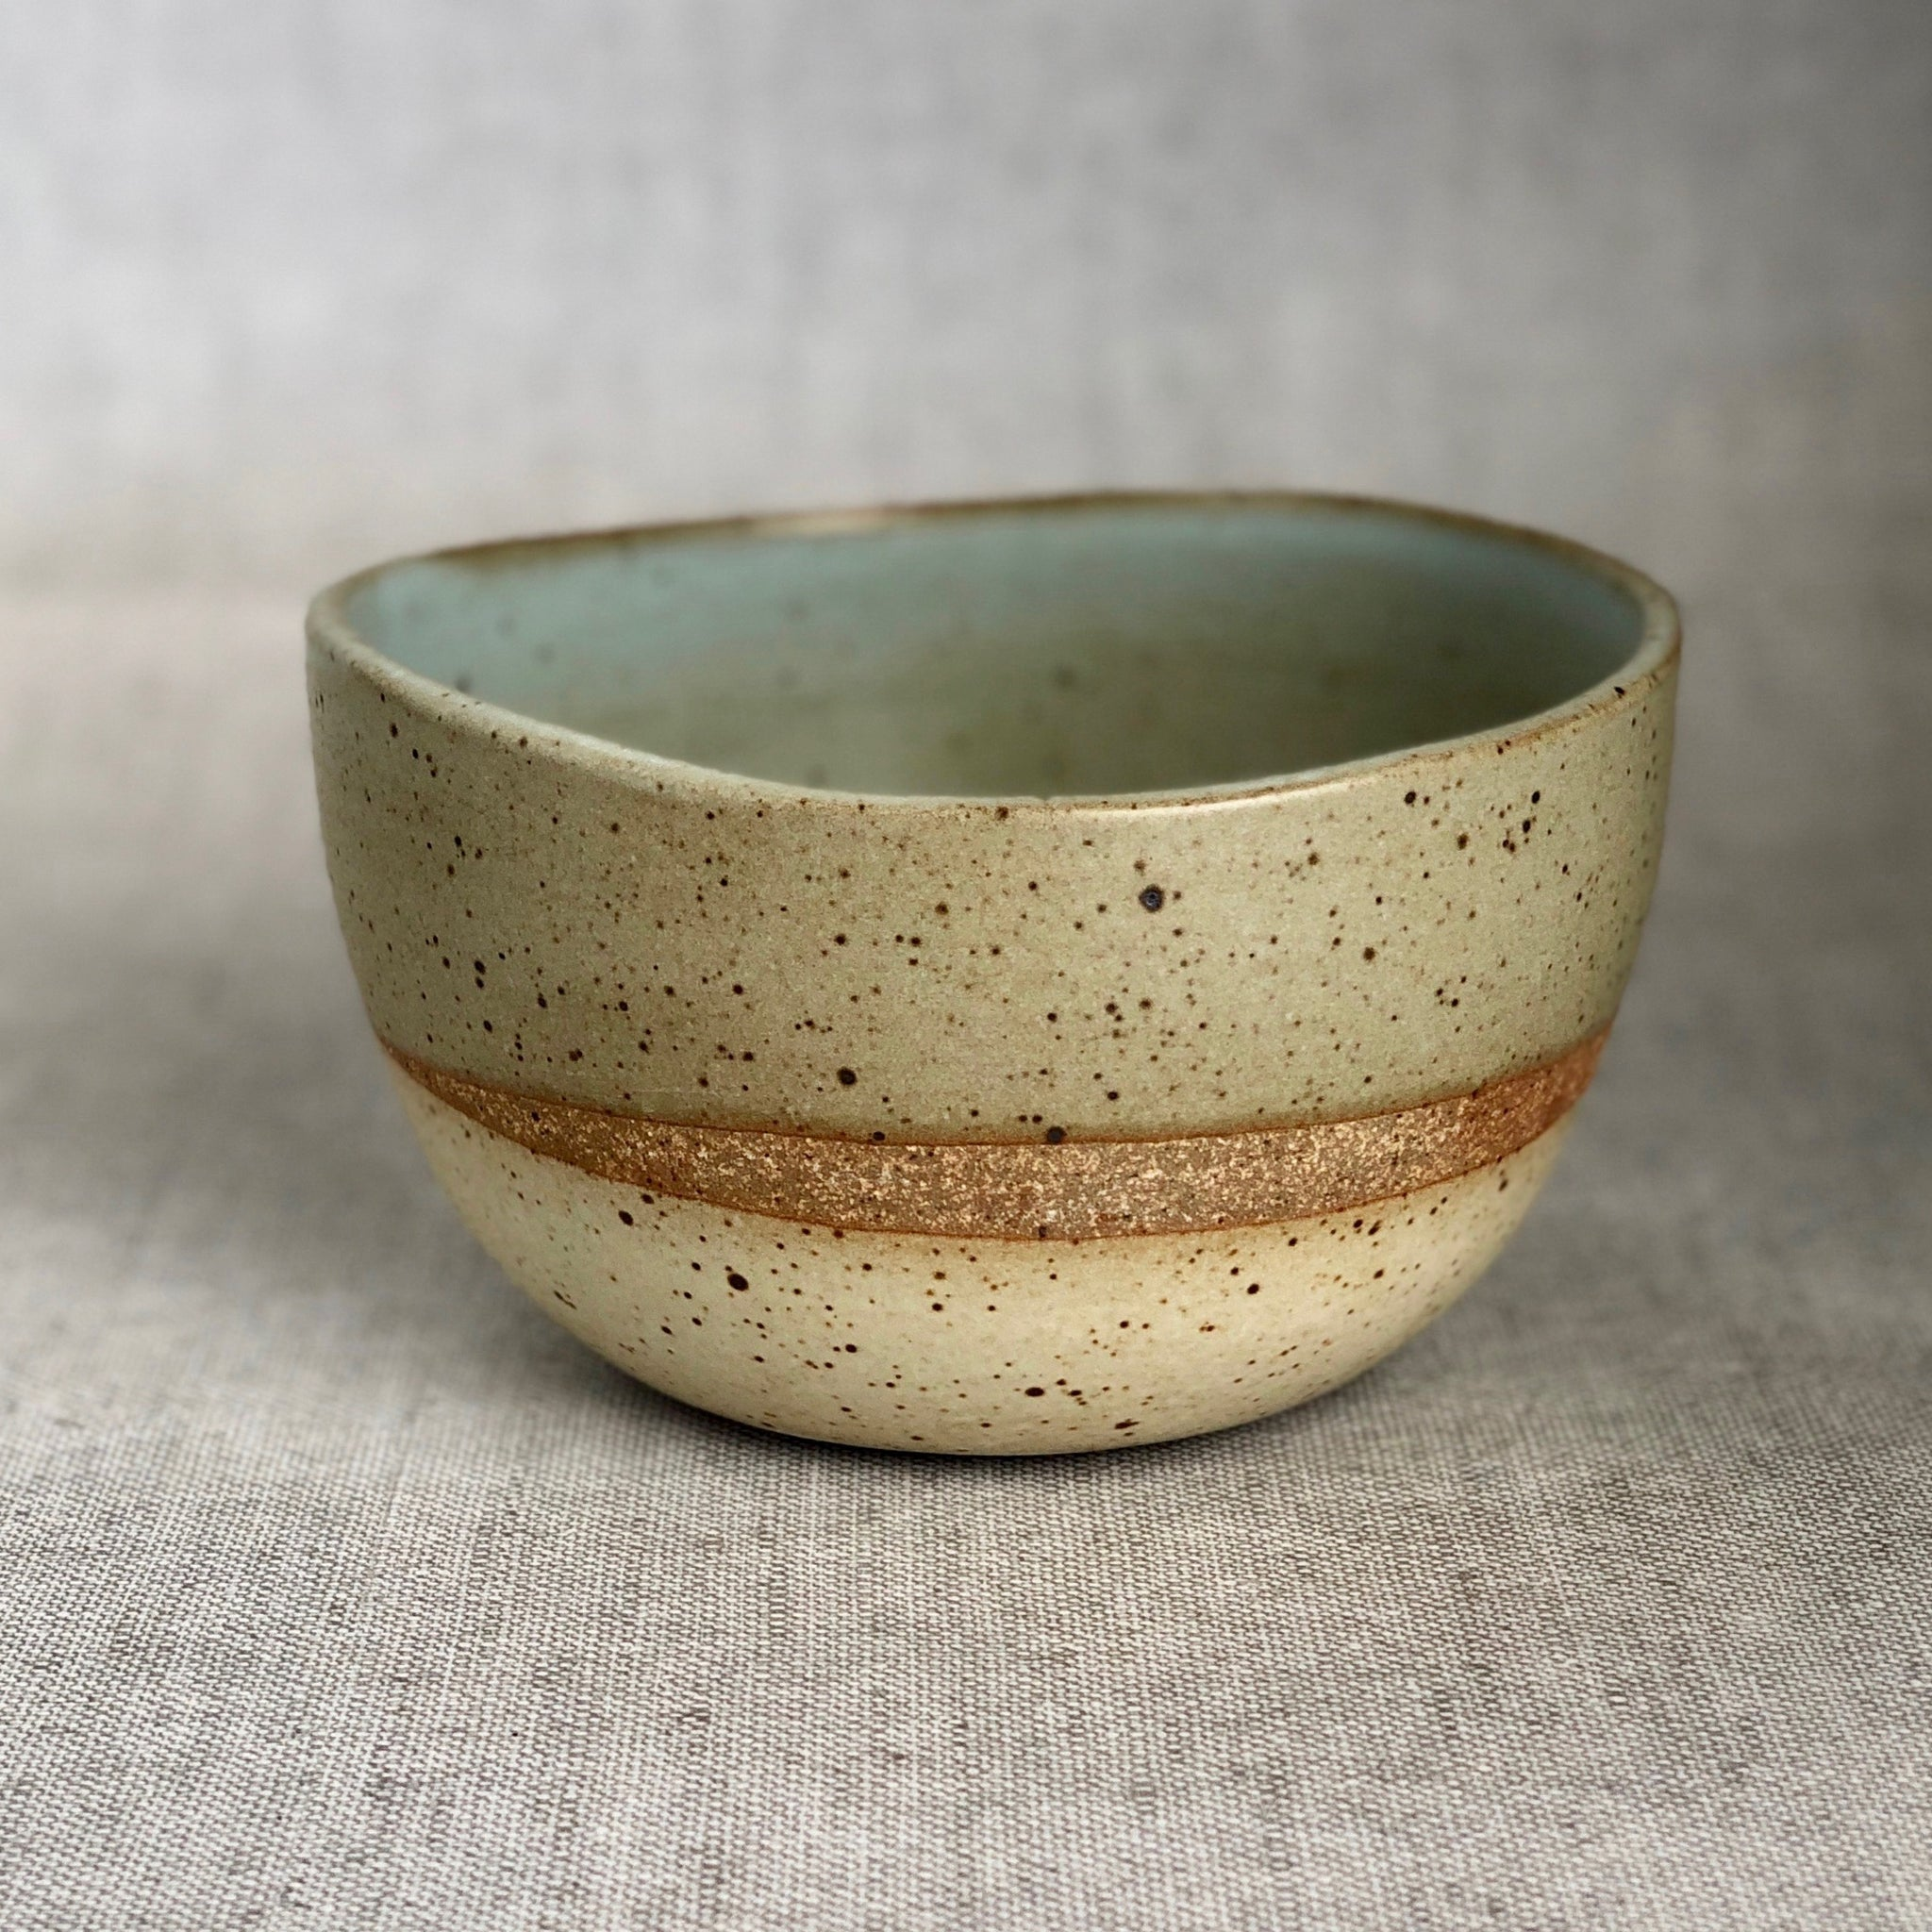 Seafoam Green & White Cereal Bowl